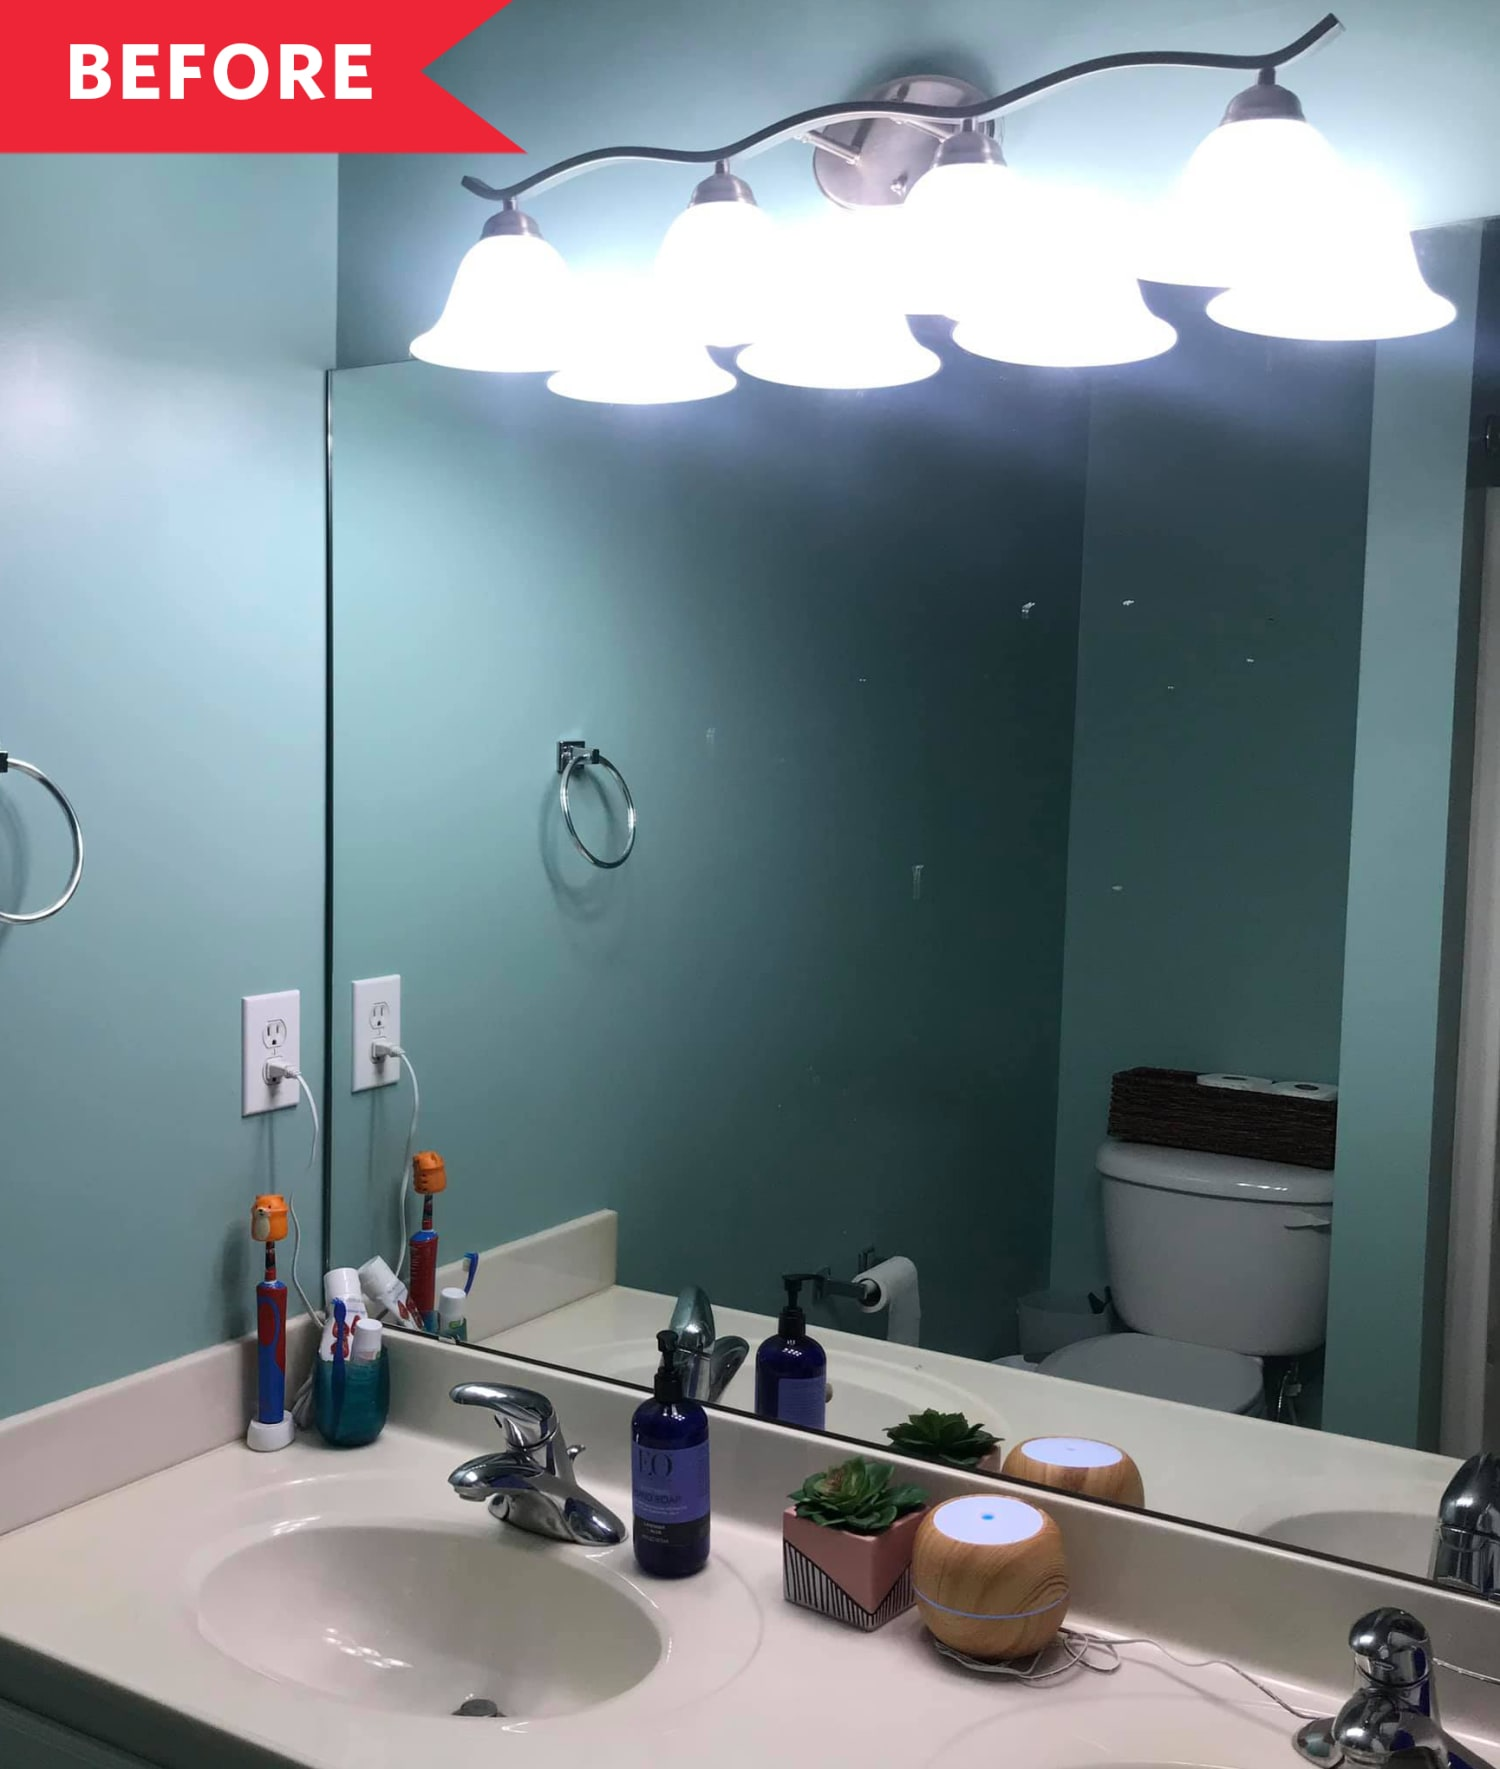 Before and After: This Bright DIY Bathroom Transformation Cost Just $204